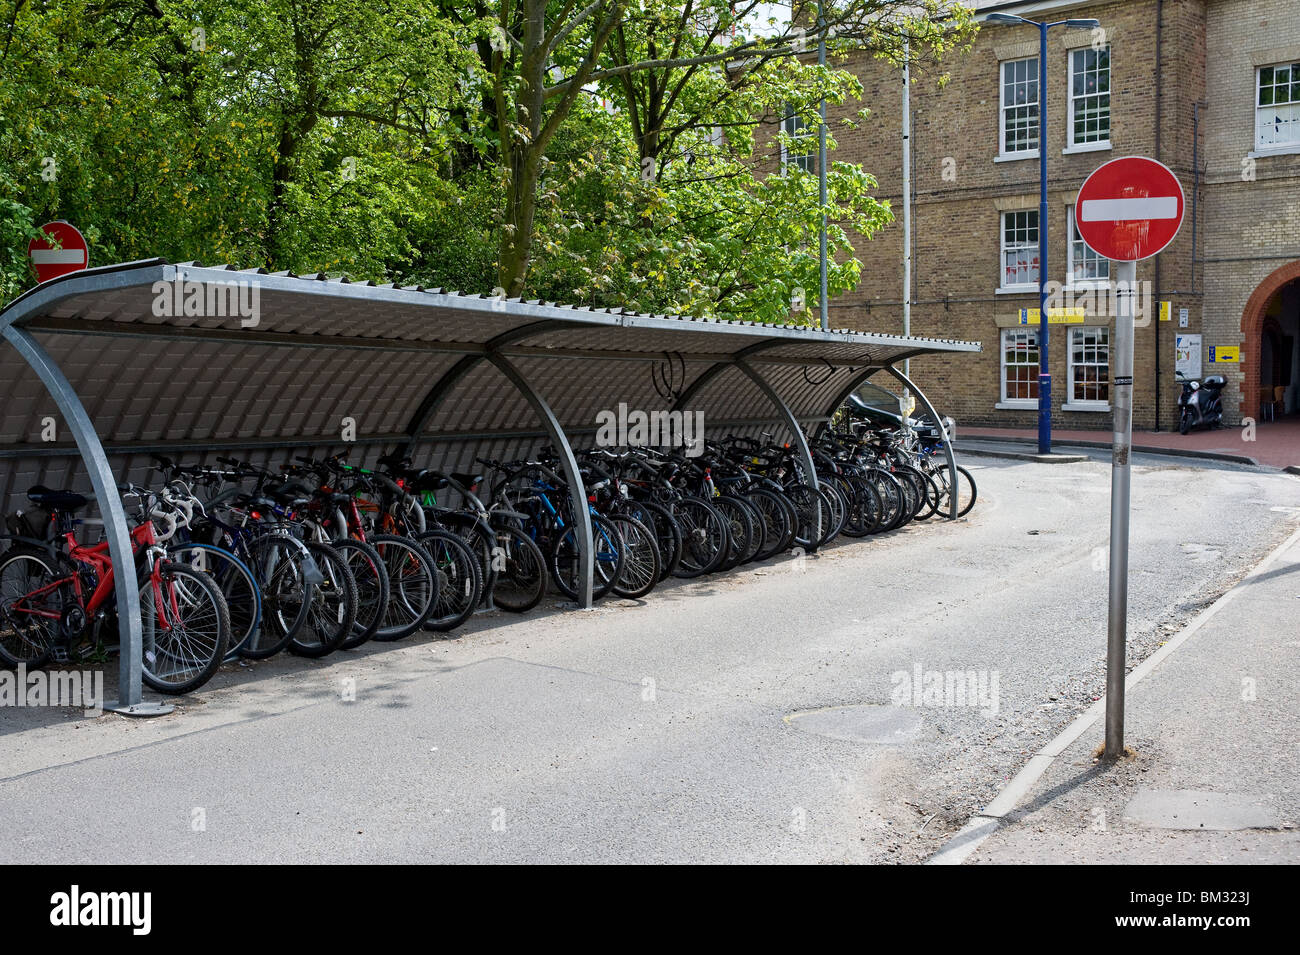 Commuters bicycles parked in a shelter.  Photo by Gordon Scammell - Stock Image